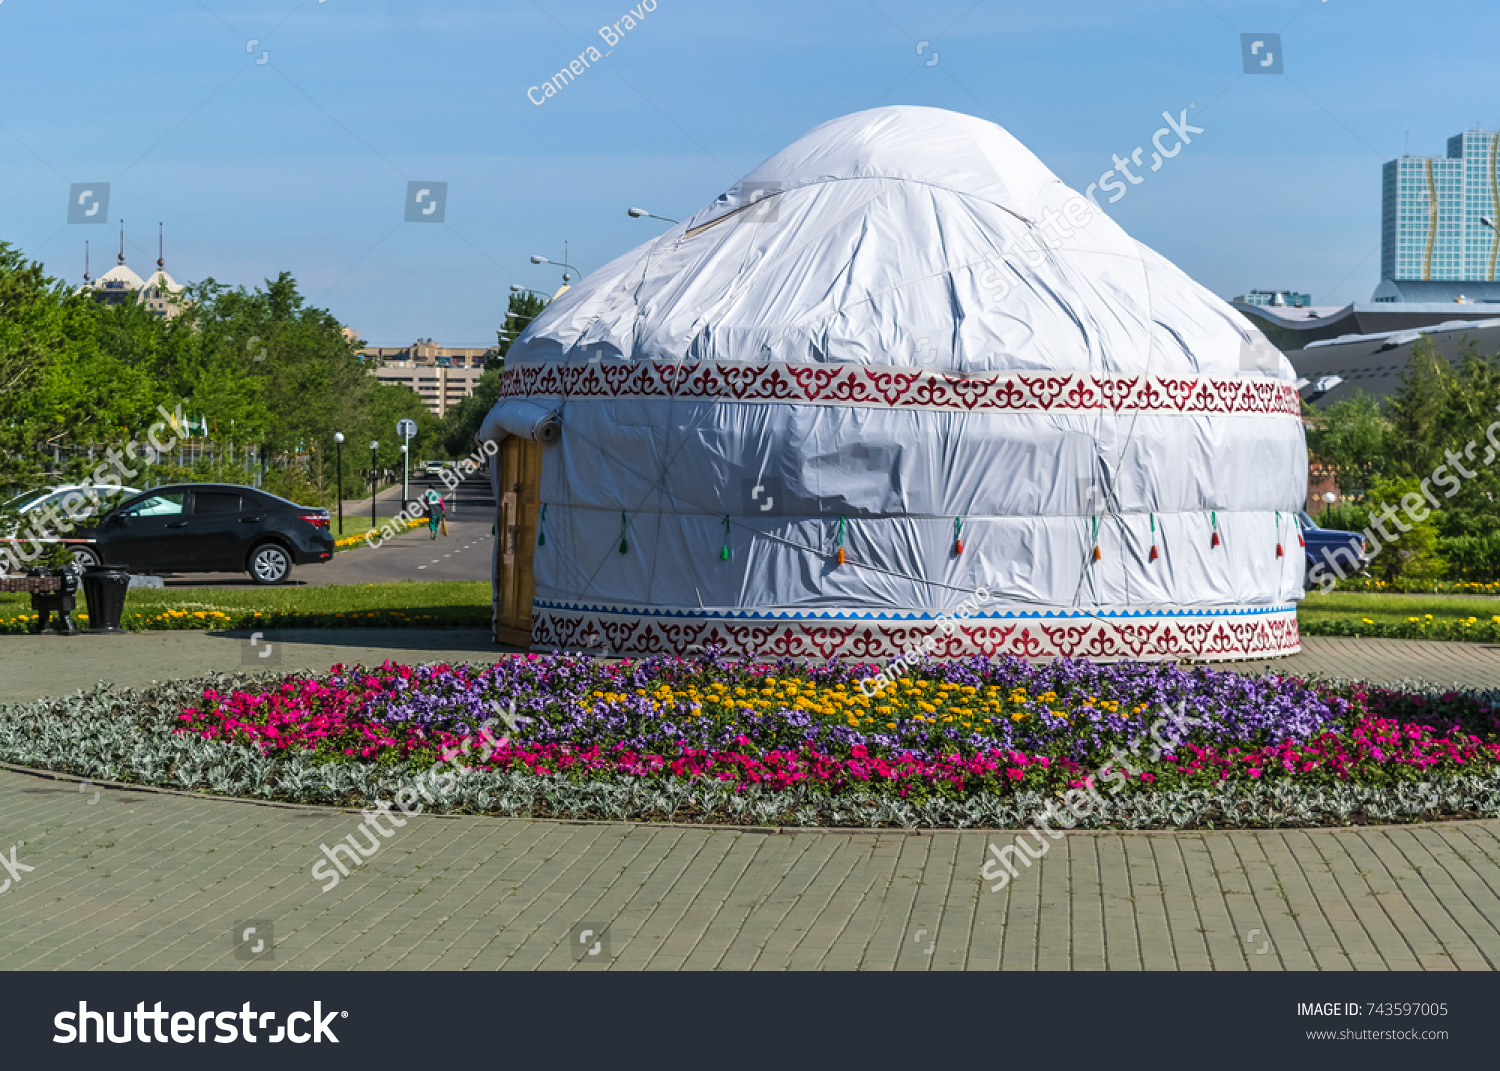 Tent House Built White Canvas Native Stock Photo 743597005 - Shutterstock & Tent House Built White Canvas Native Stock Photo 743597005 ...